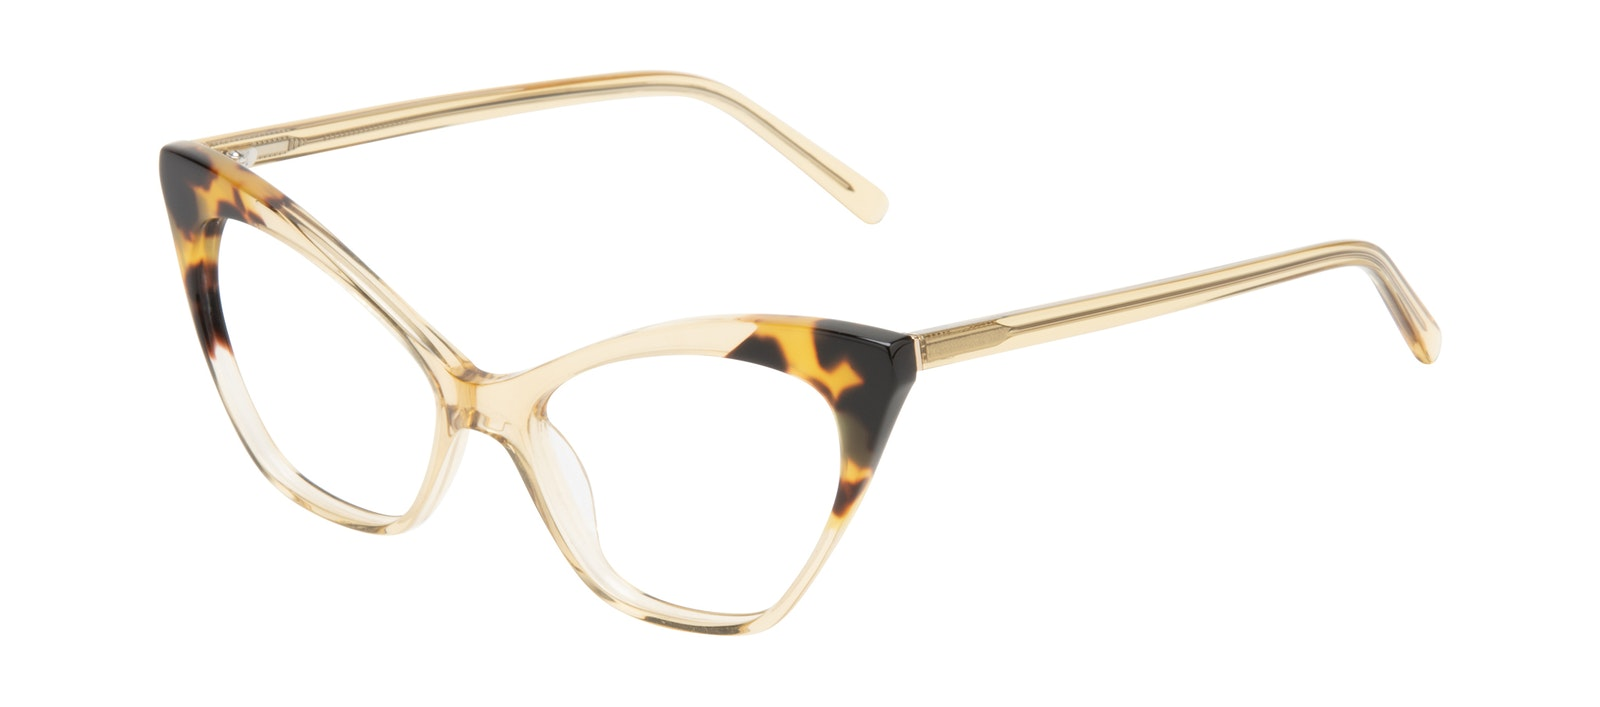 Affordable Fashion Glasses Cat Eye Eyeglasses Women Gossip Golden Tort Tilt